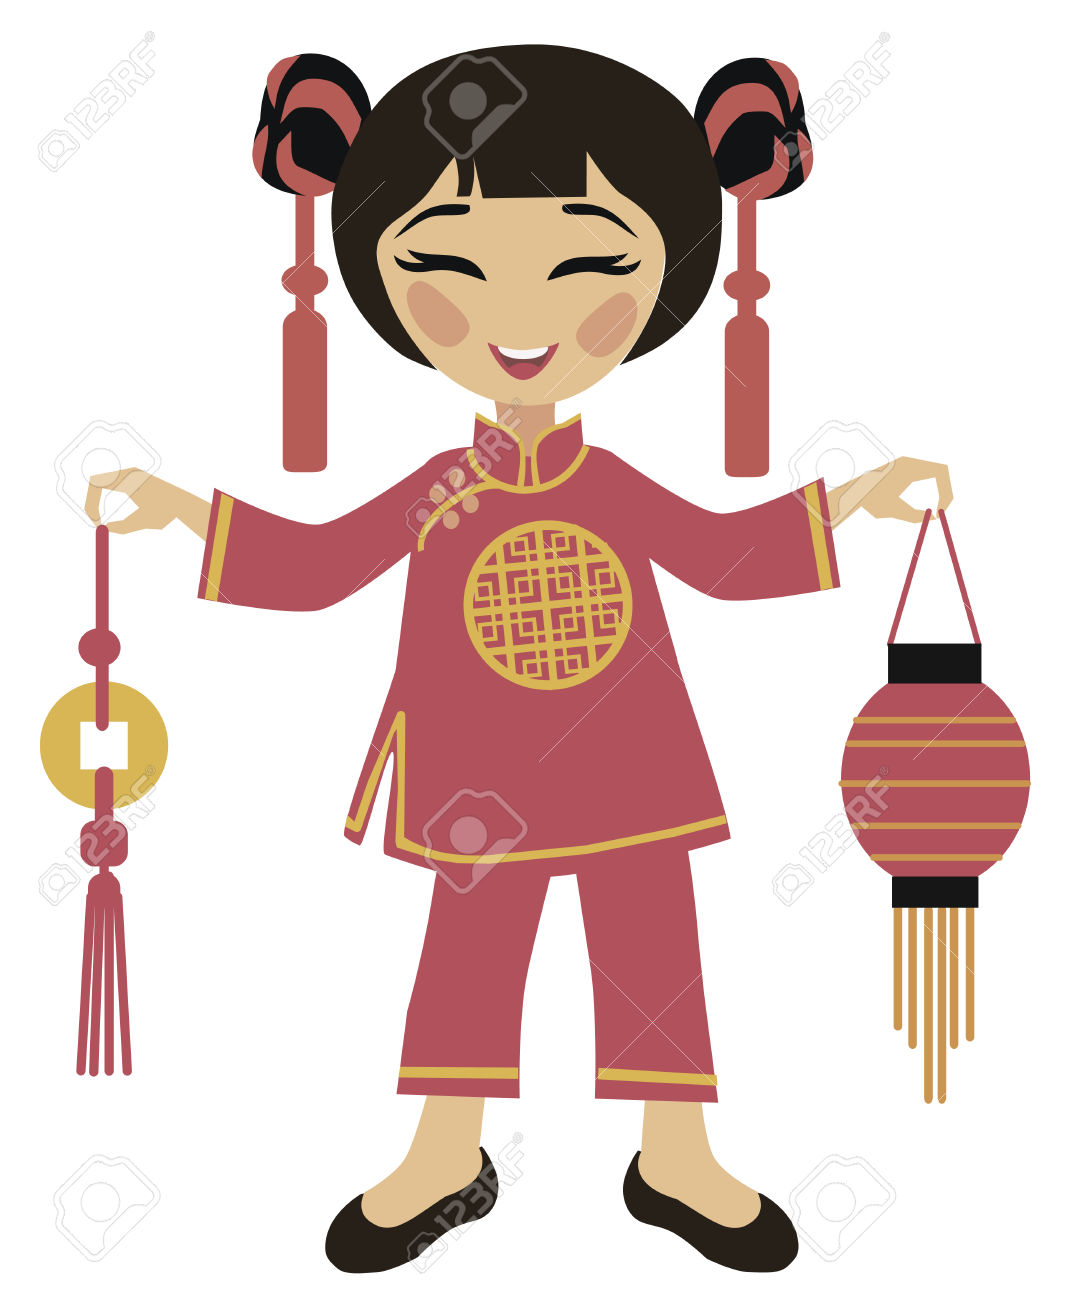 Chinese girl dress clipart.